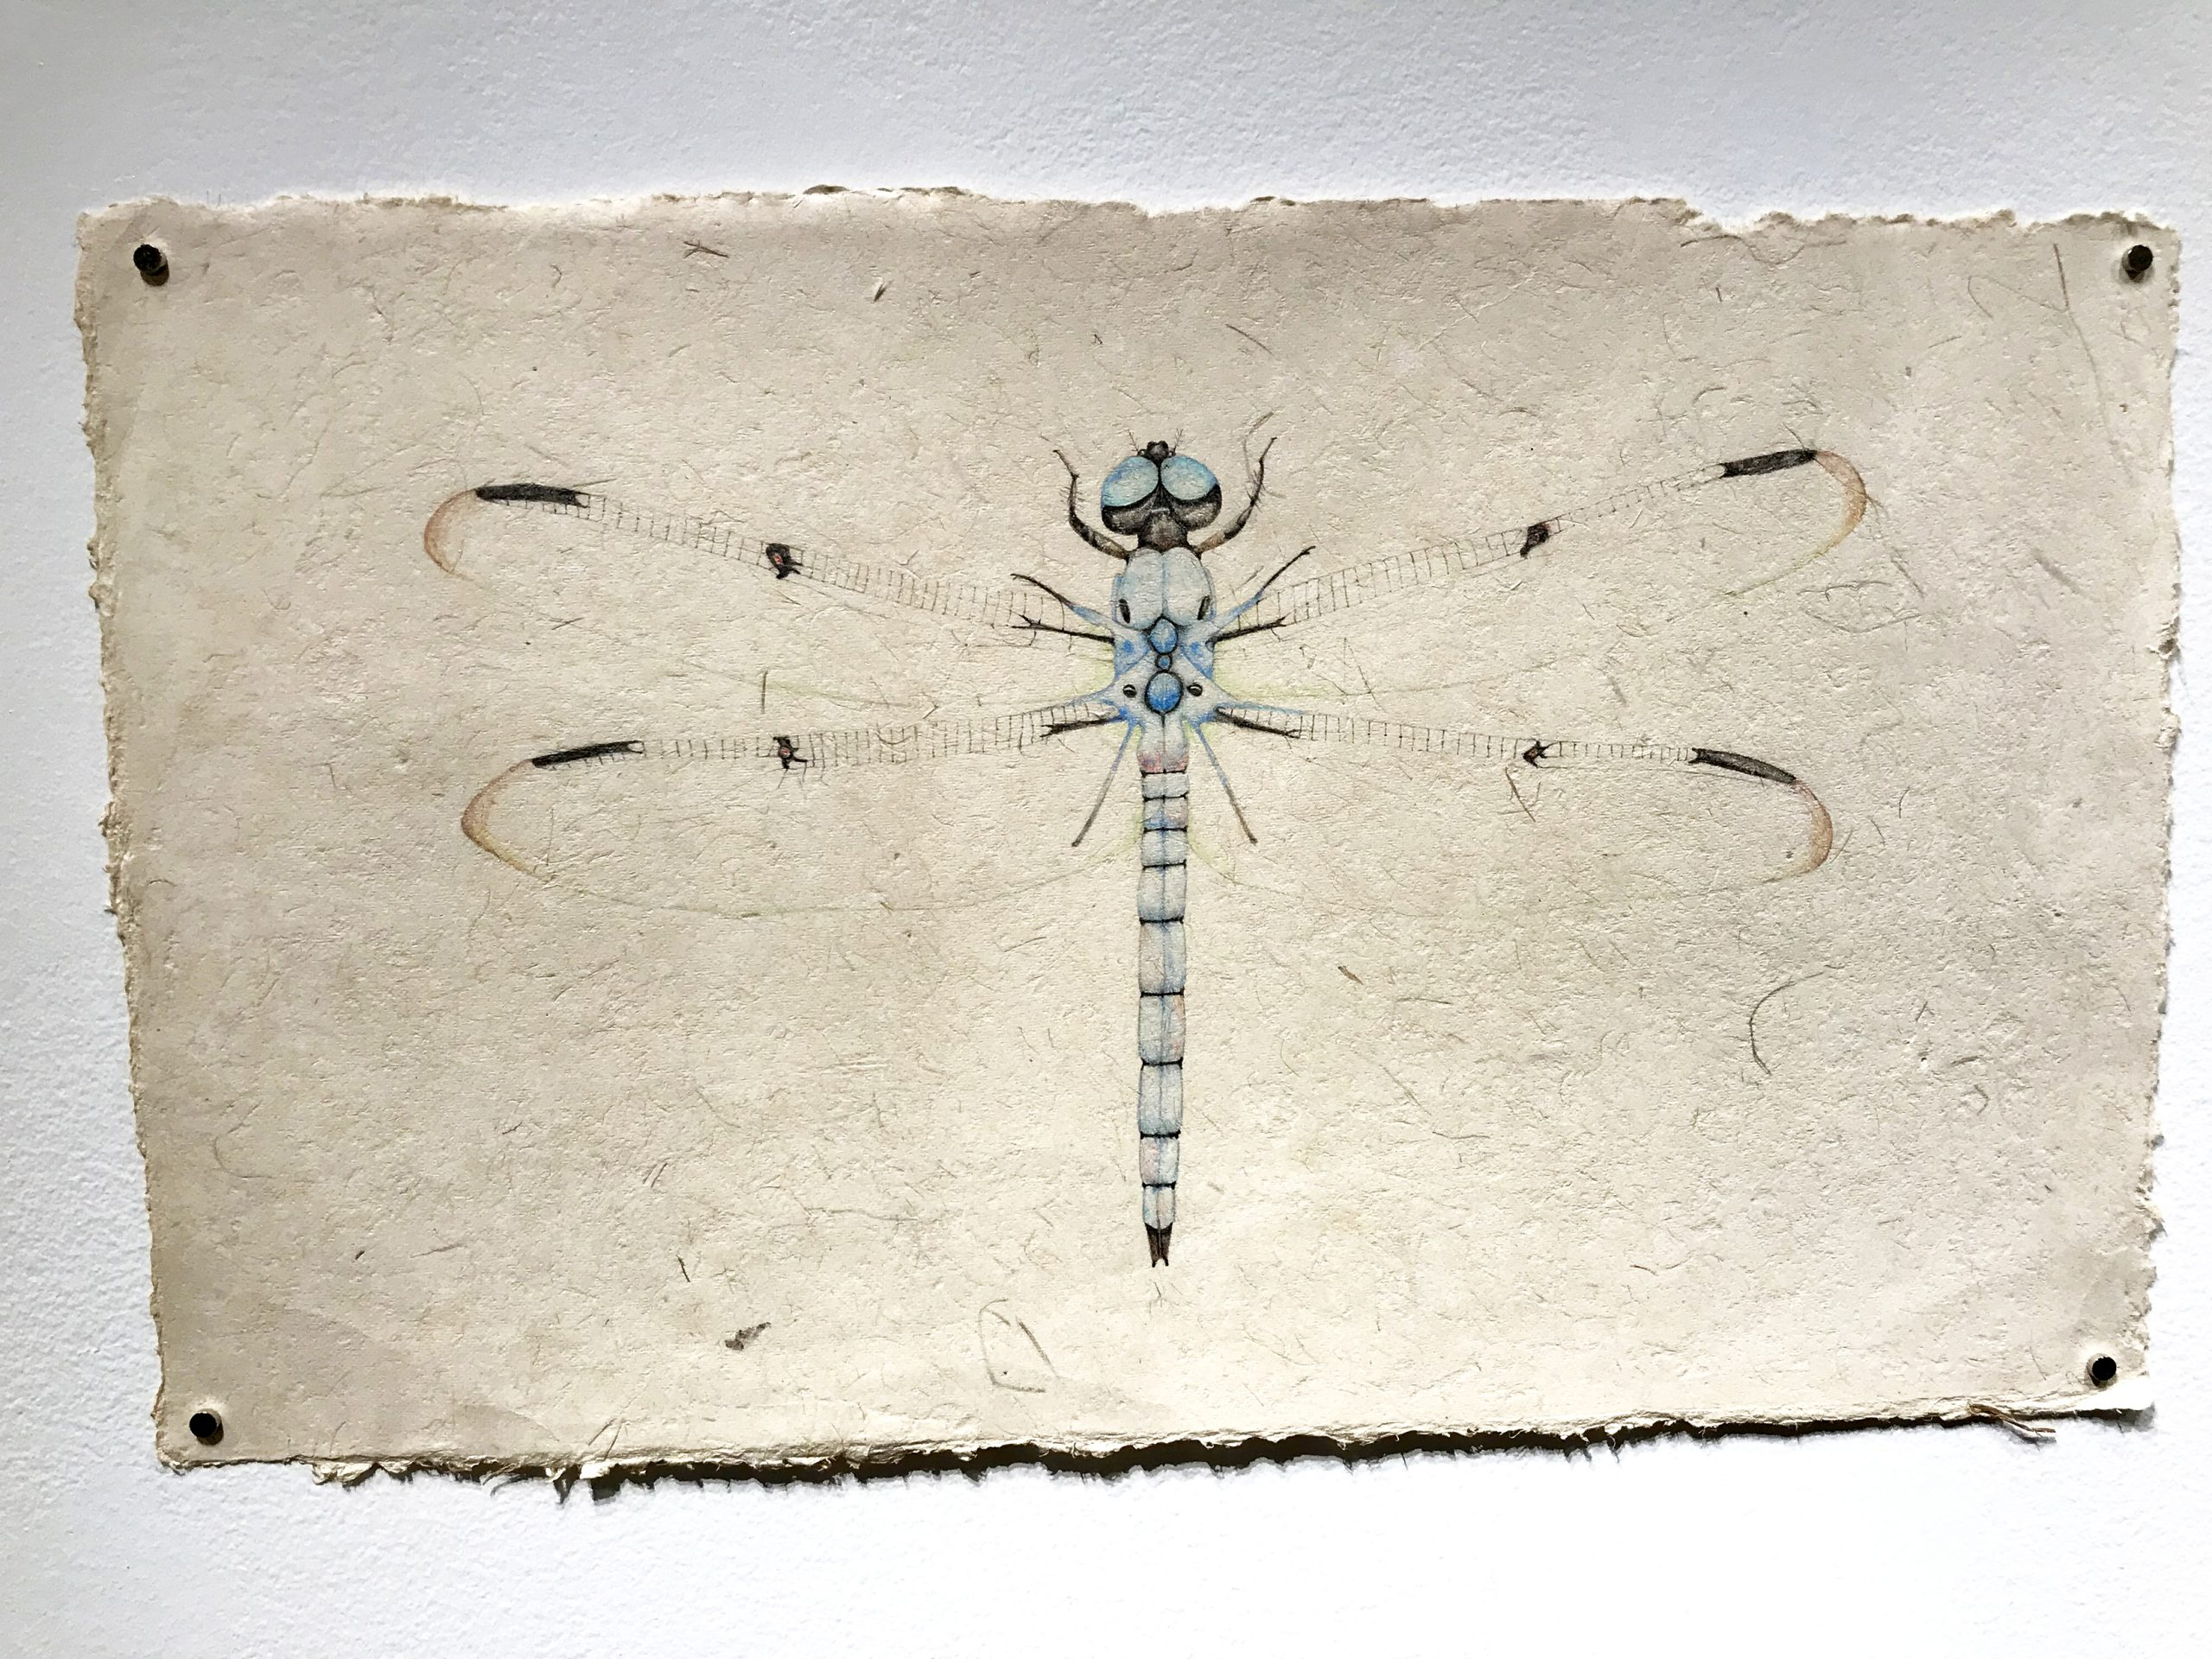 drawing of huge dragonfly on handmade paper by Kristin Maija Peterson